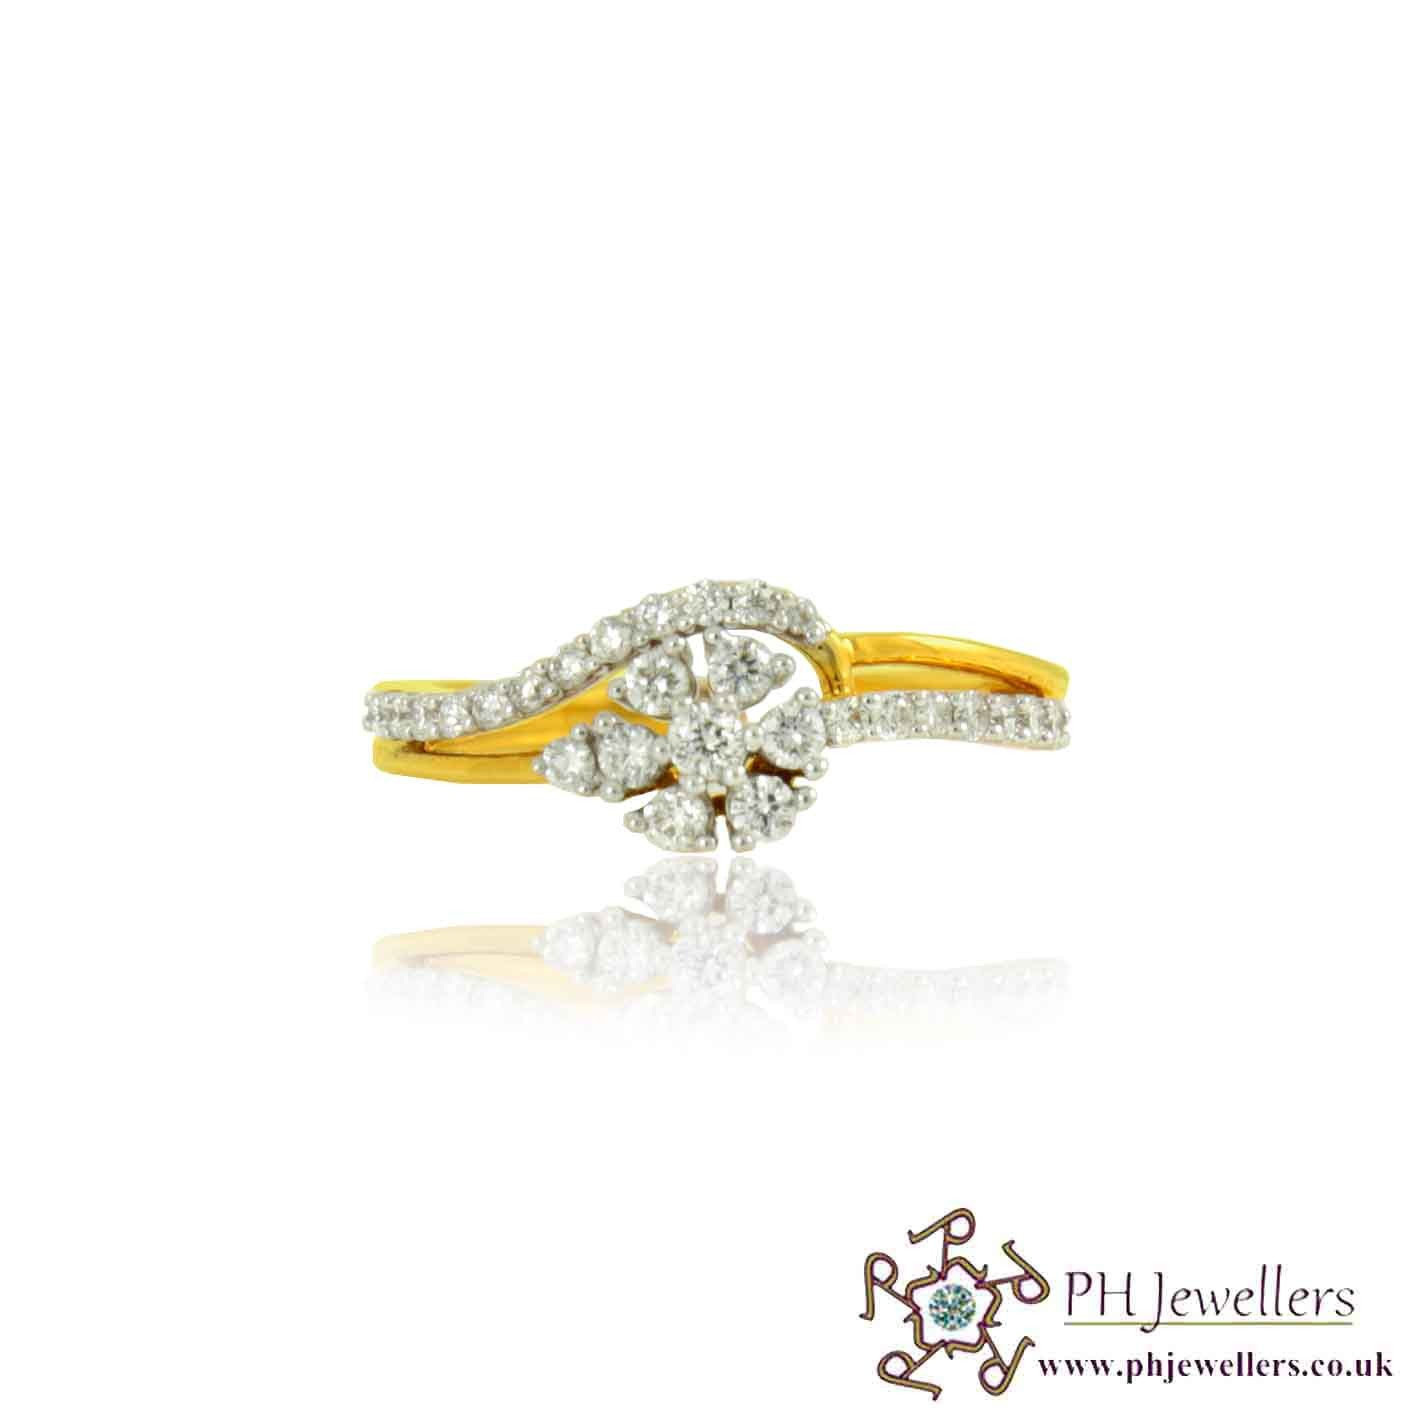 18CT 750 Hallmark Yellow Gold Diamond Size N Ring DR18